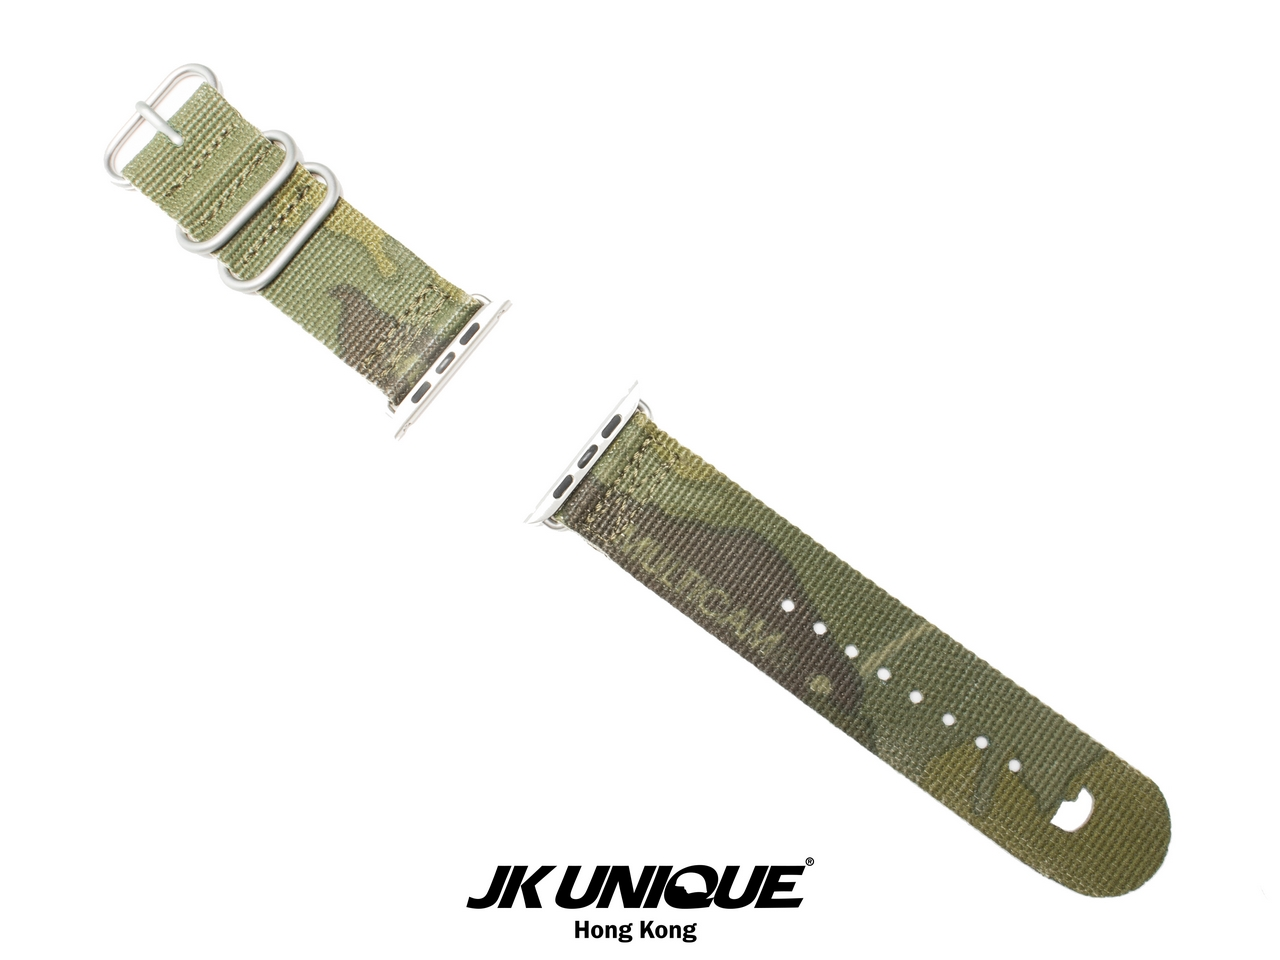 JK-UNIQUE-CAMO-NATO-Apple-Watch-Strap-42mm-SV-Multicam-Tropic-1 (1280).jpg